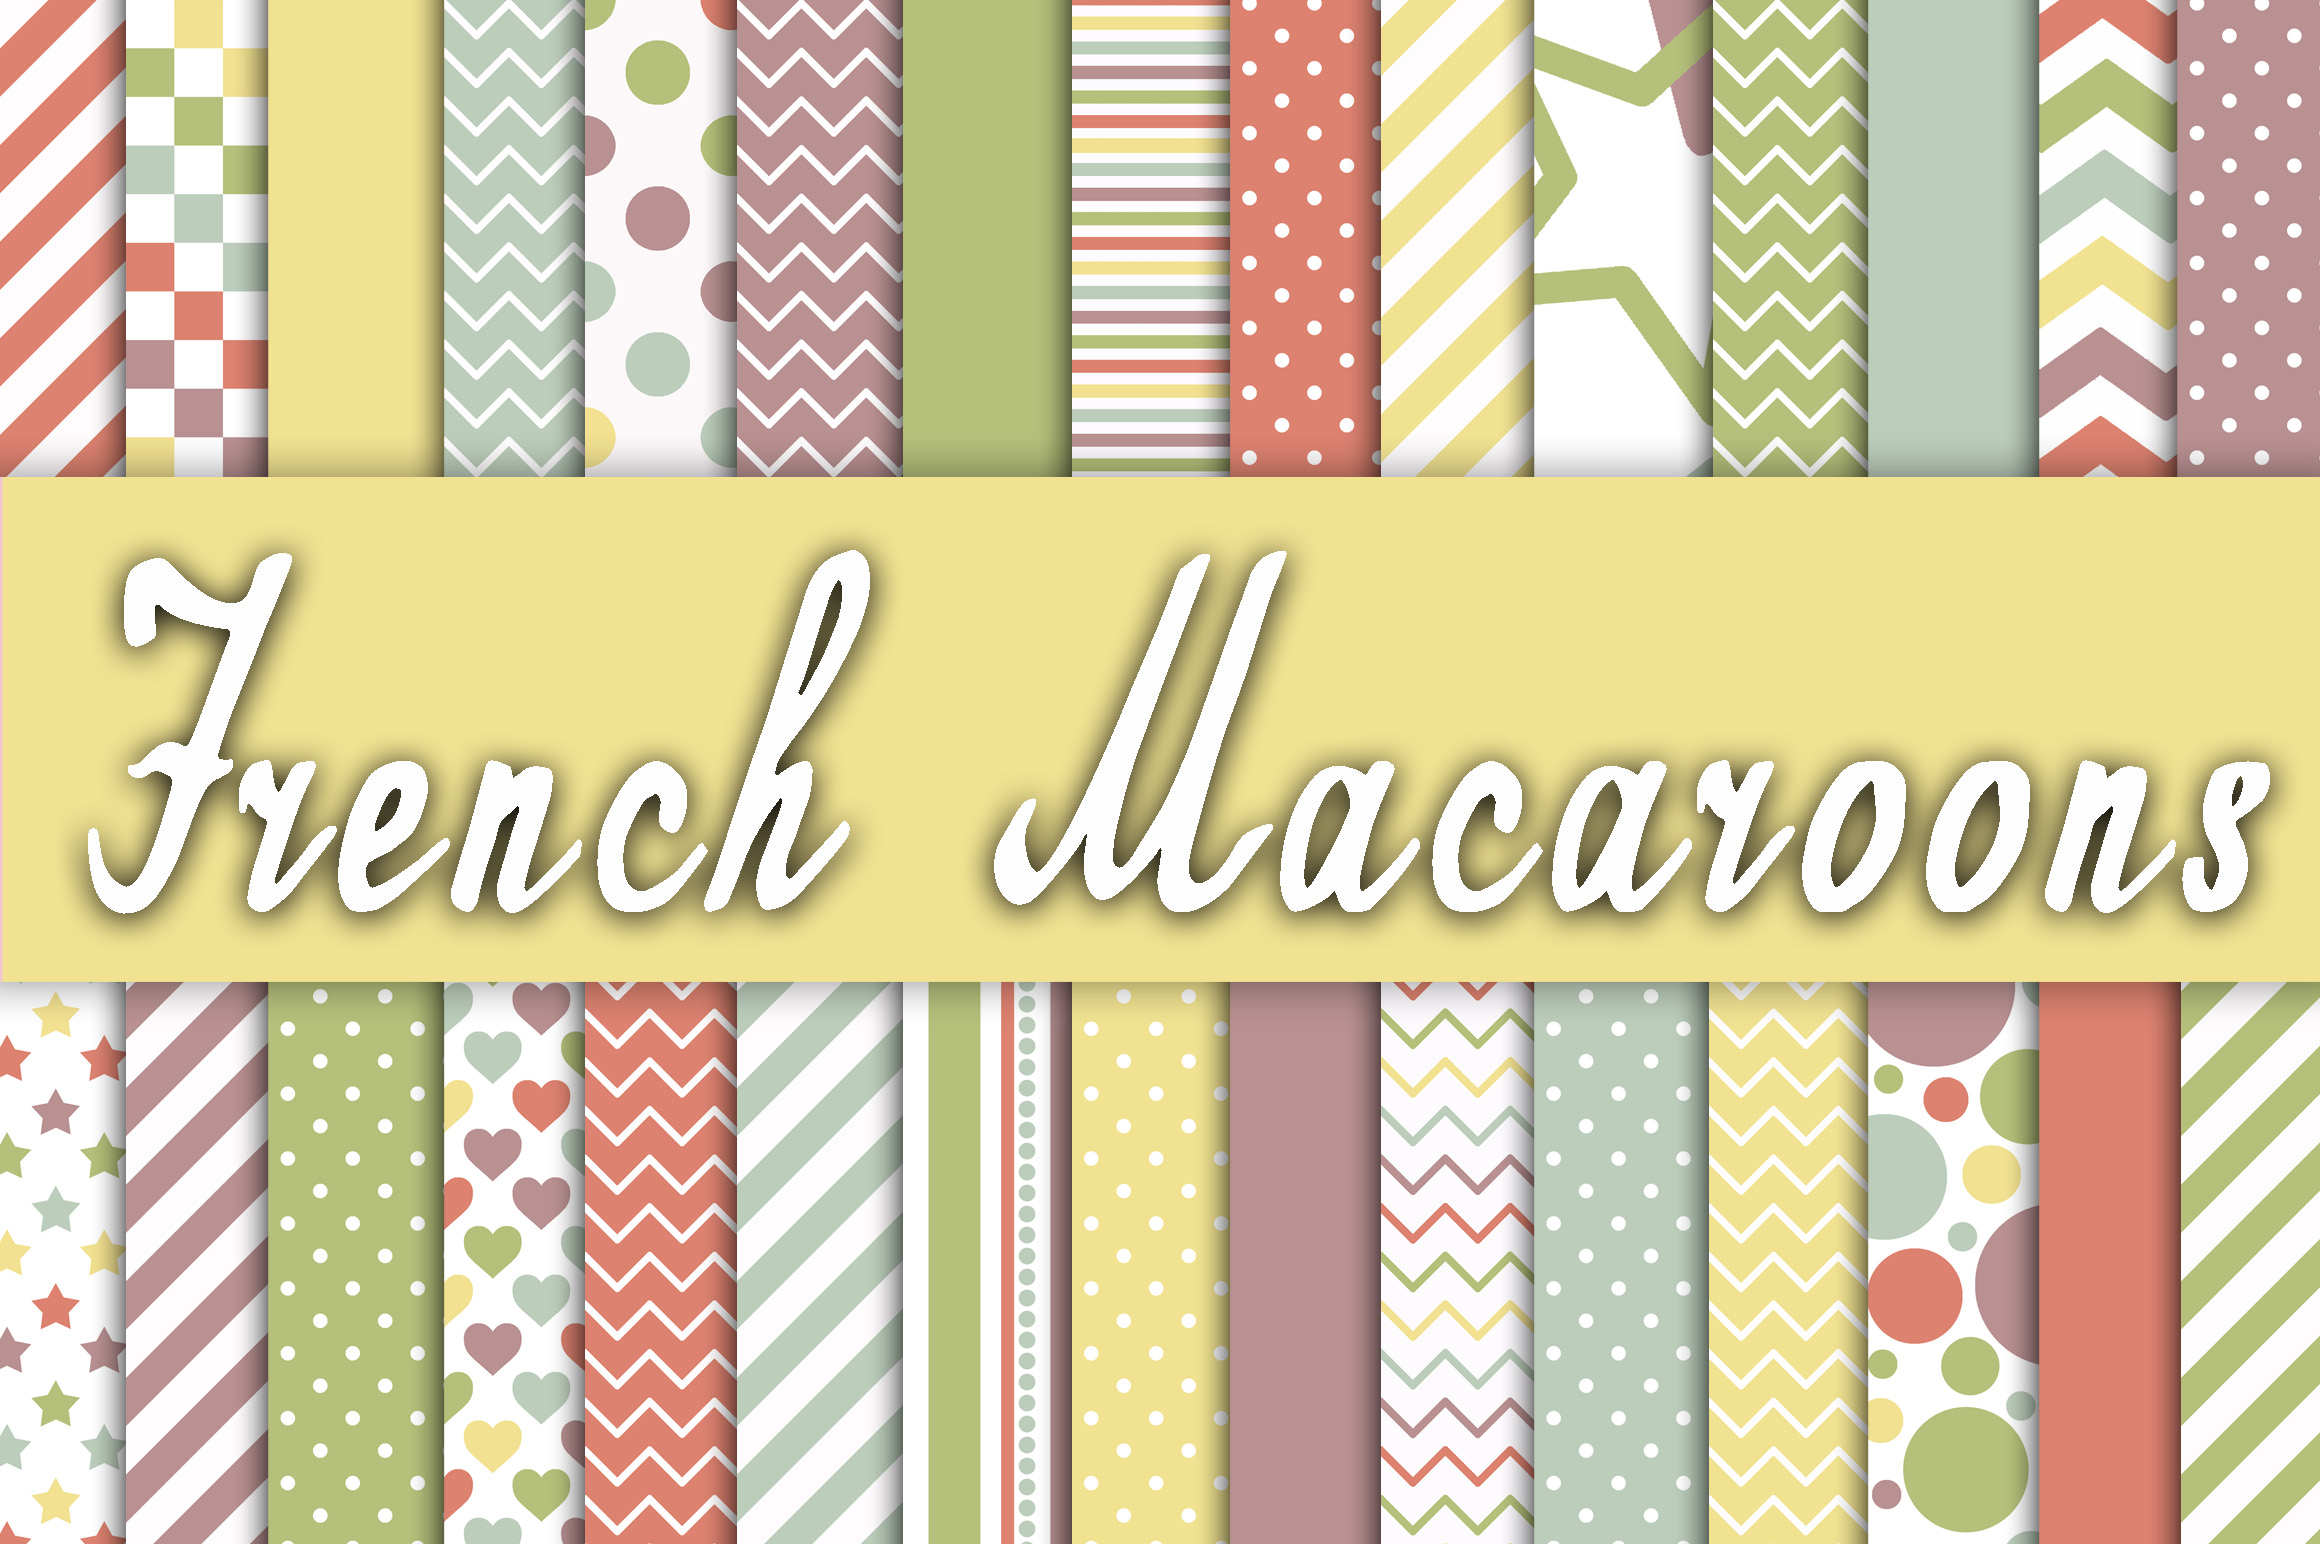 French Macaroons Digital Paper Graphic Backgrounds By oldmarketdesigns - Image 1